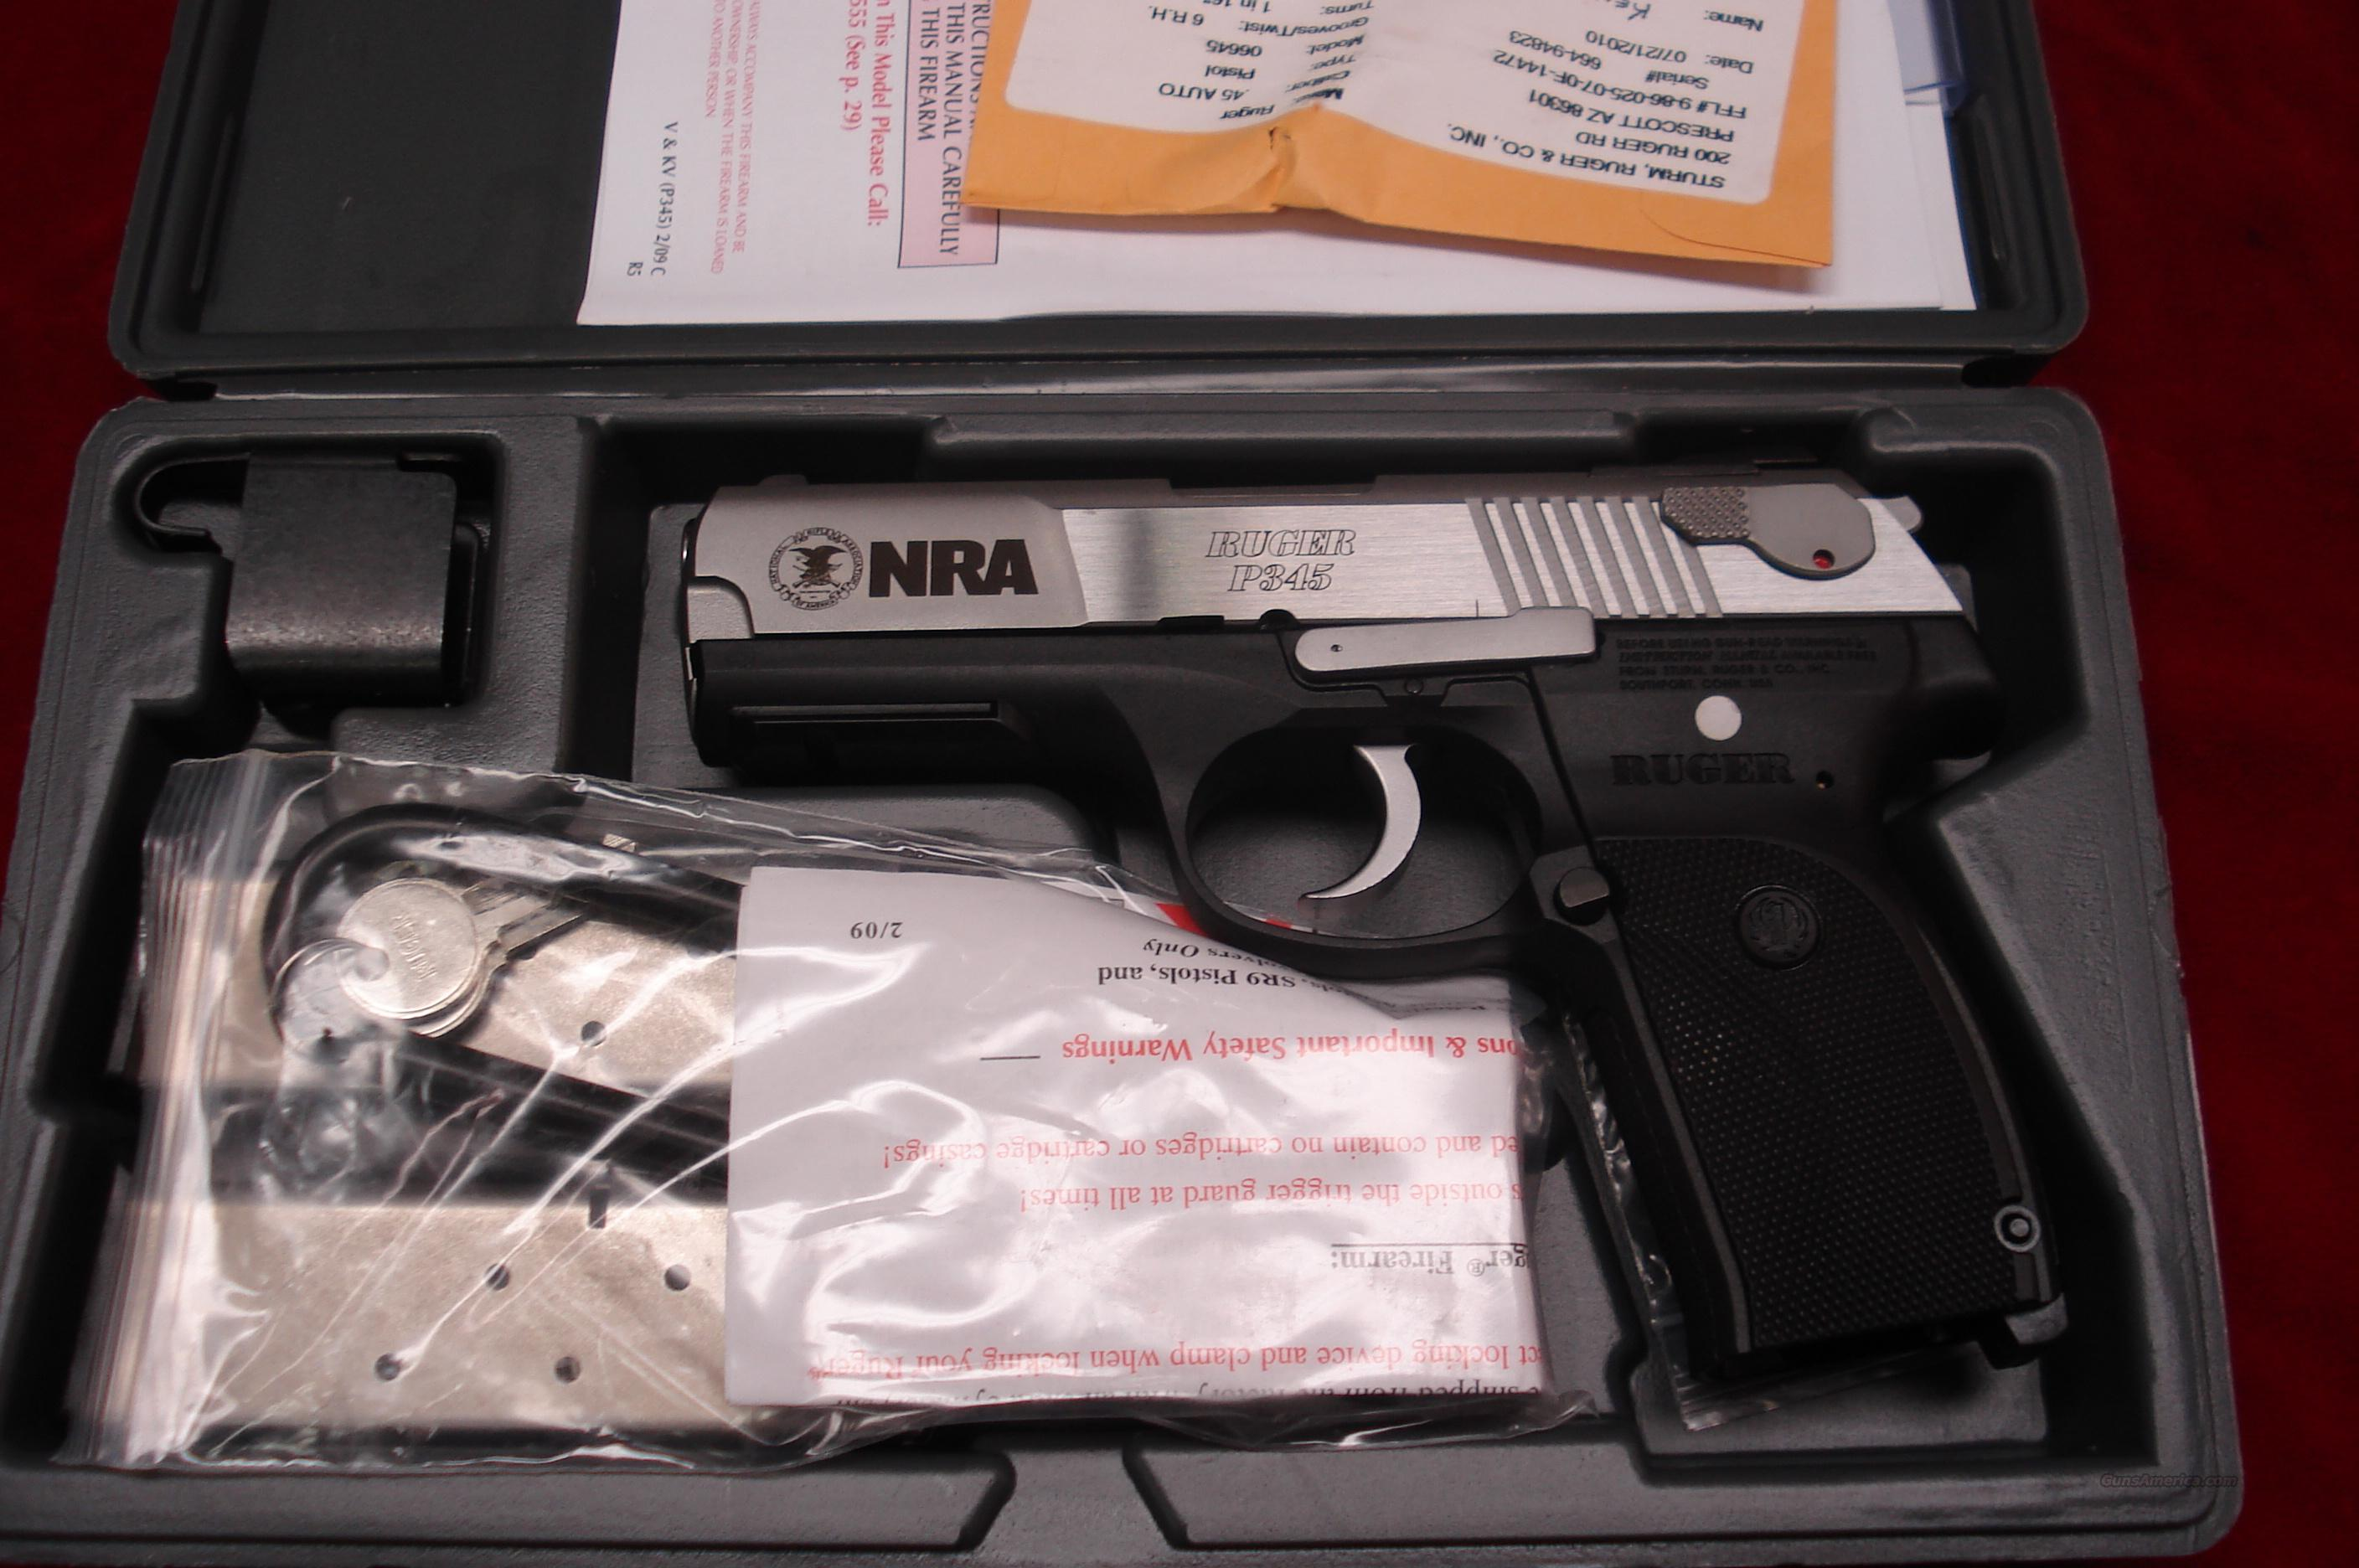 NRA RUGER MODEL KP345PR 45 ACP STAINLESS LNIB  Guns > Pistols > Ruger Semi-Auto Pistols > P-Series